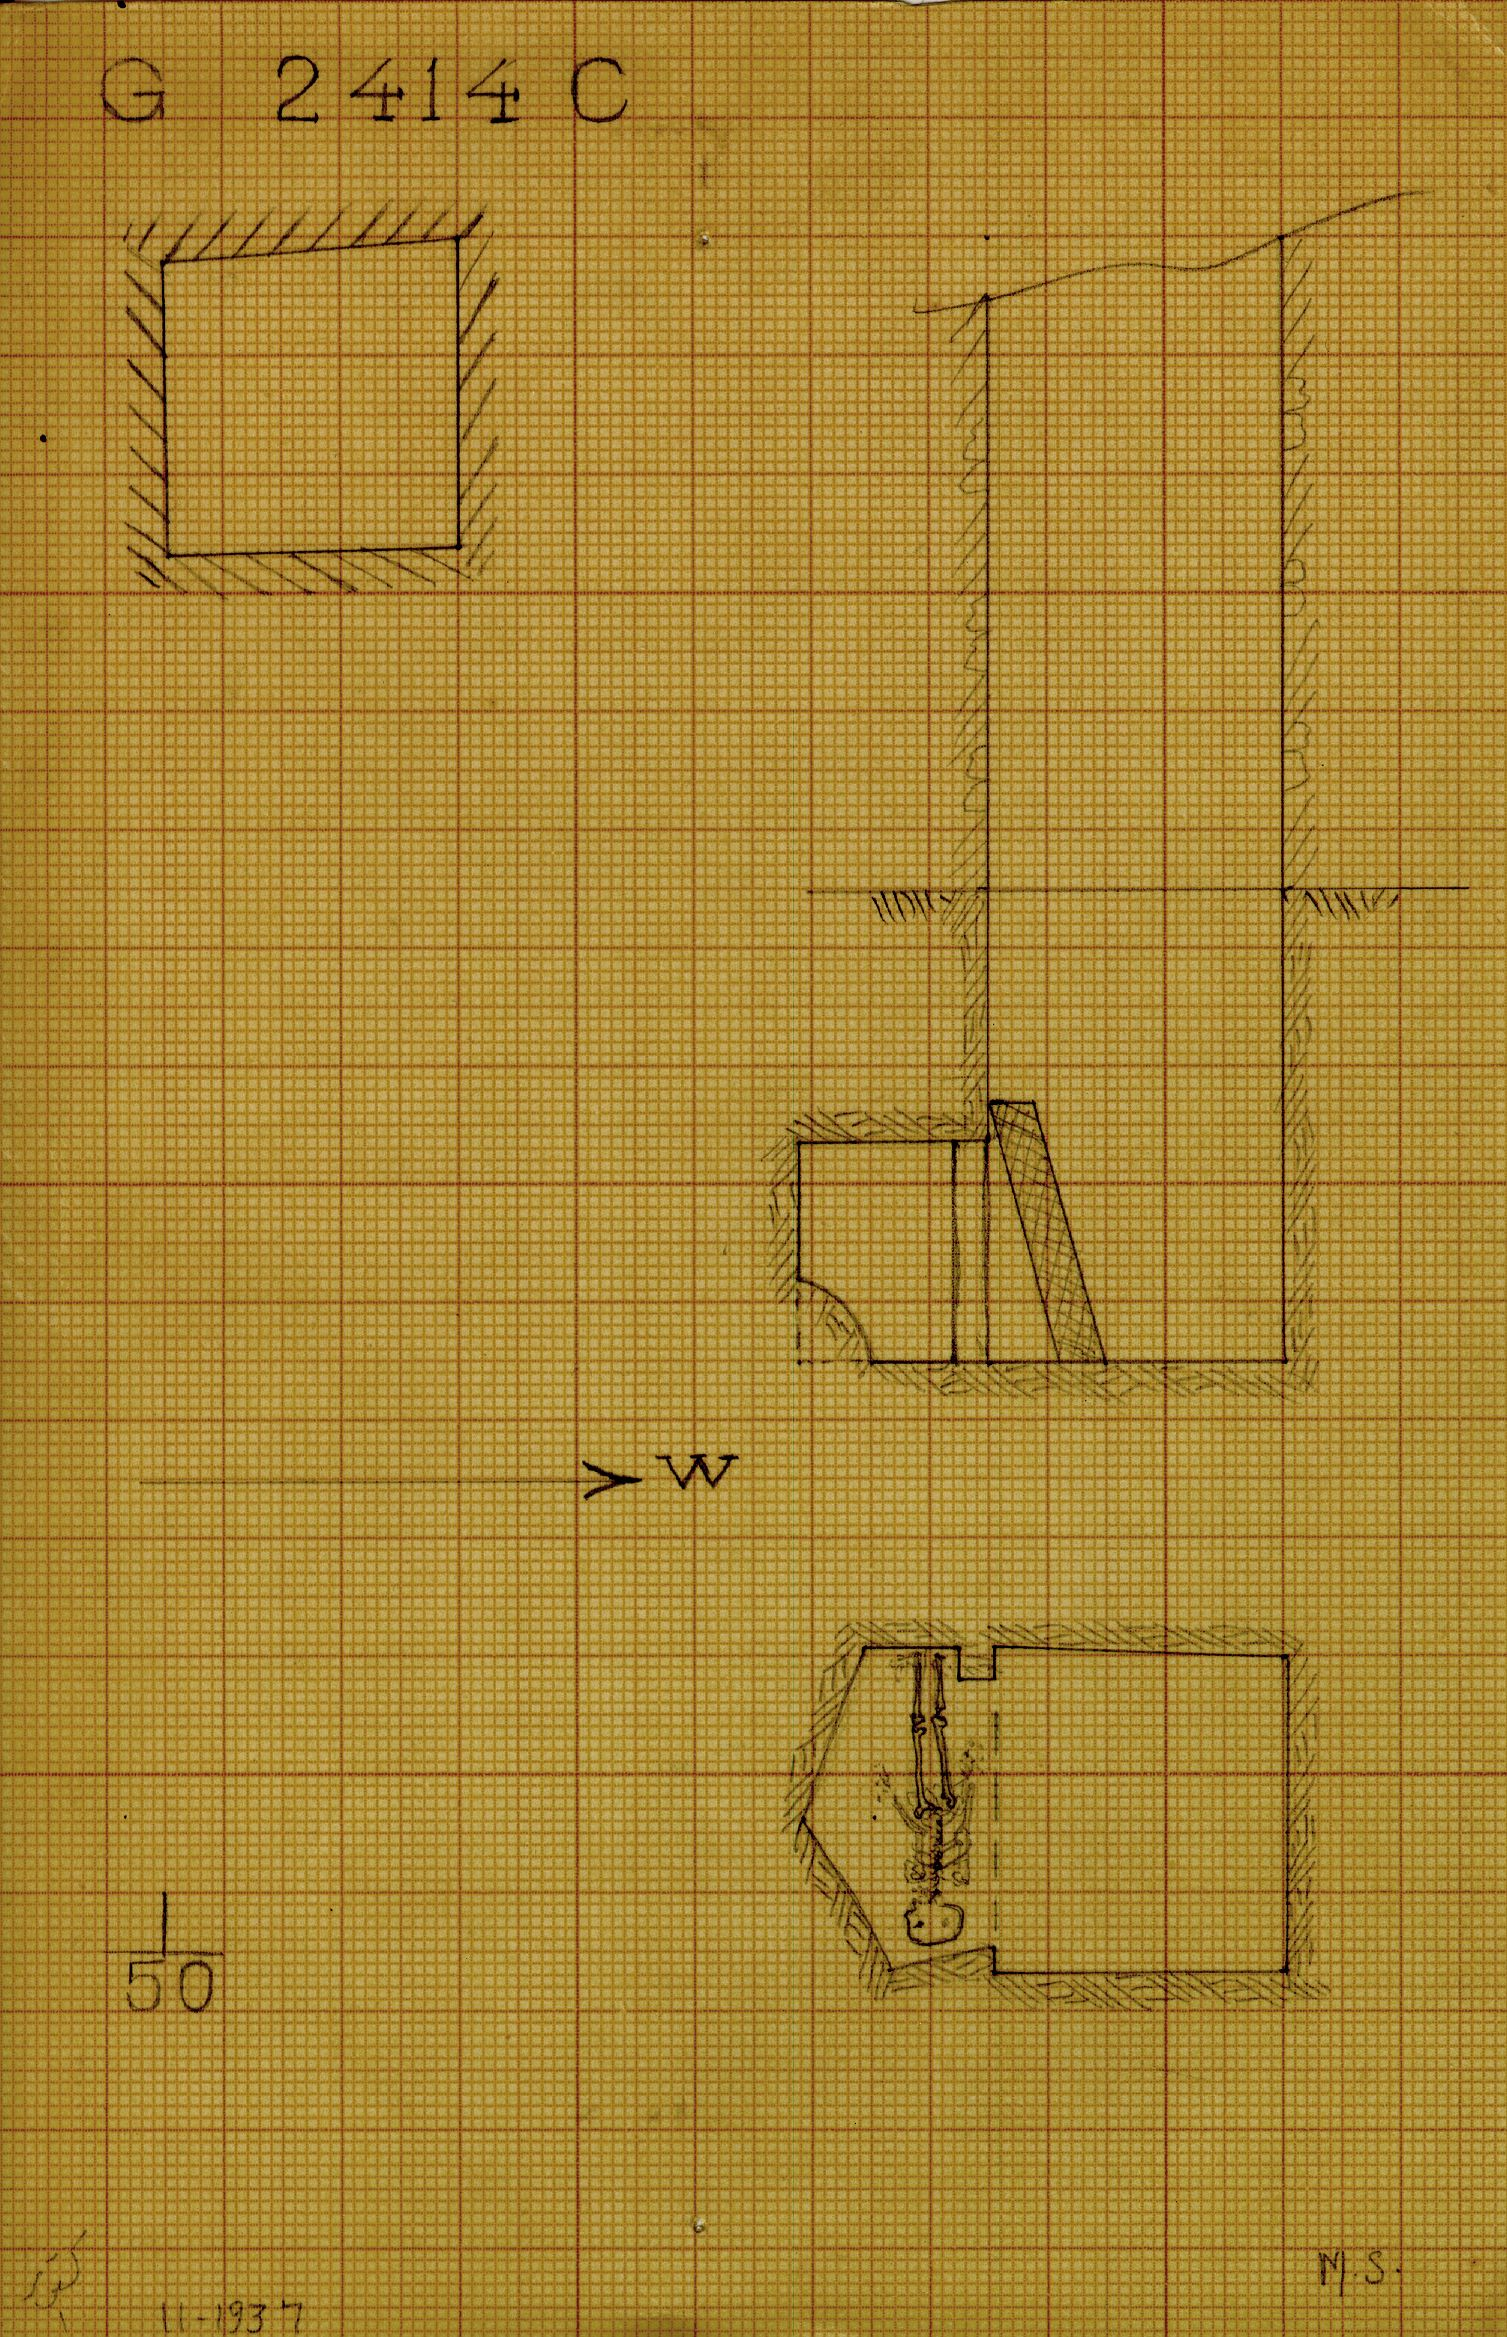 Maps and plans: G 2414, Shaft C